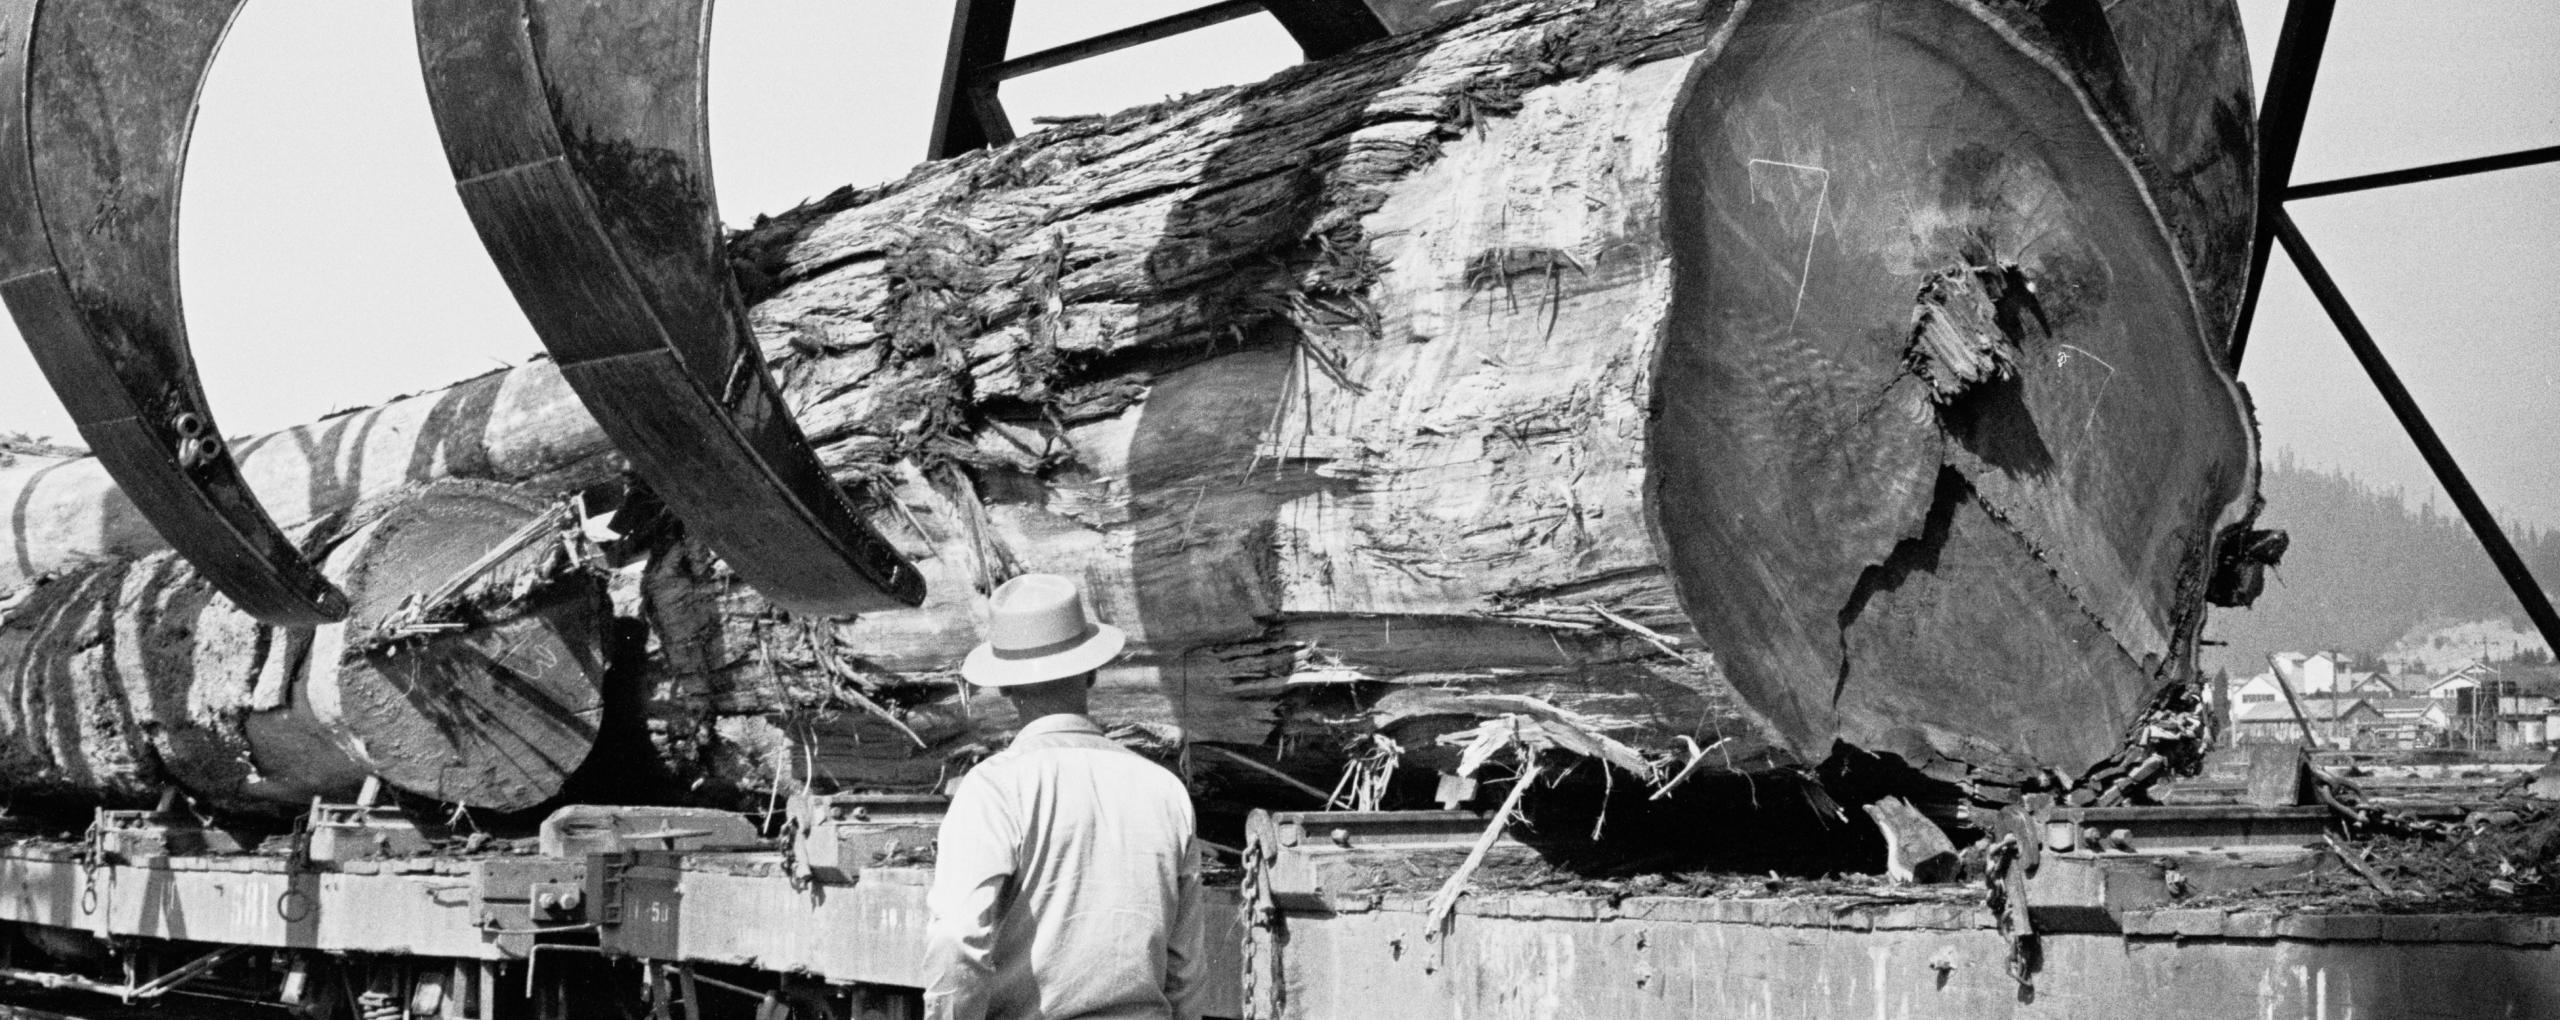 1963, Humboldt County, CA. Giant log lifted from railroad car at a lumber mill.